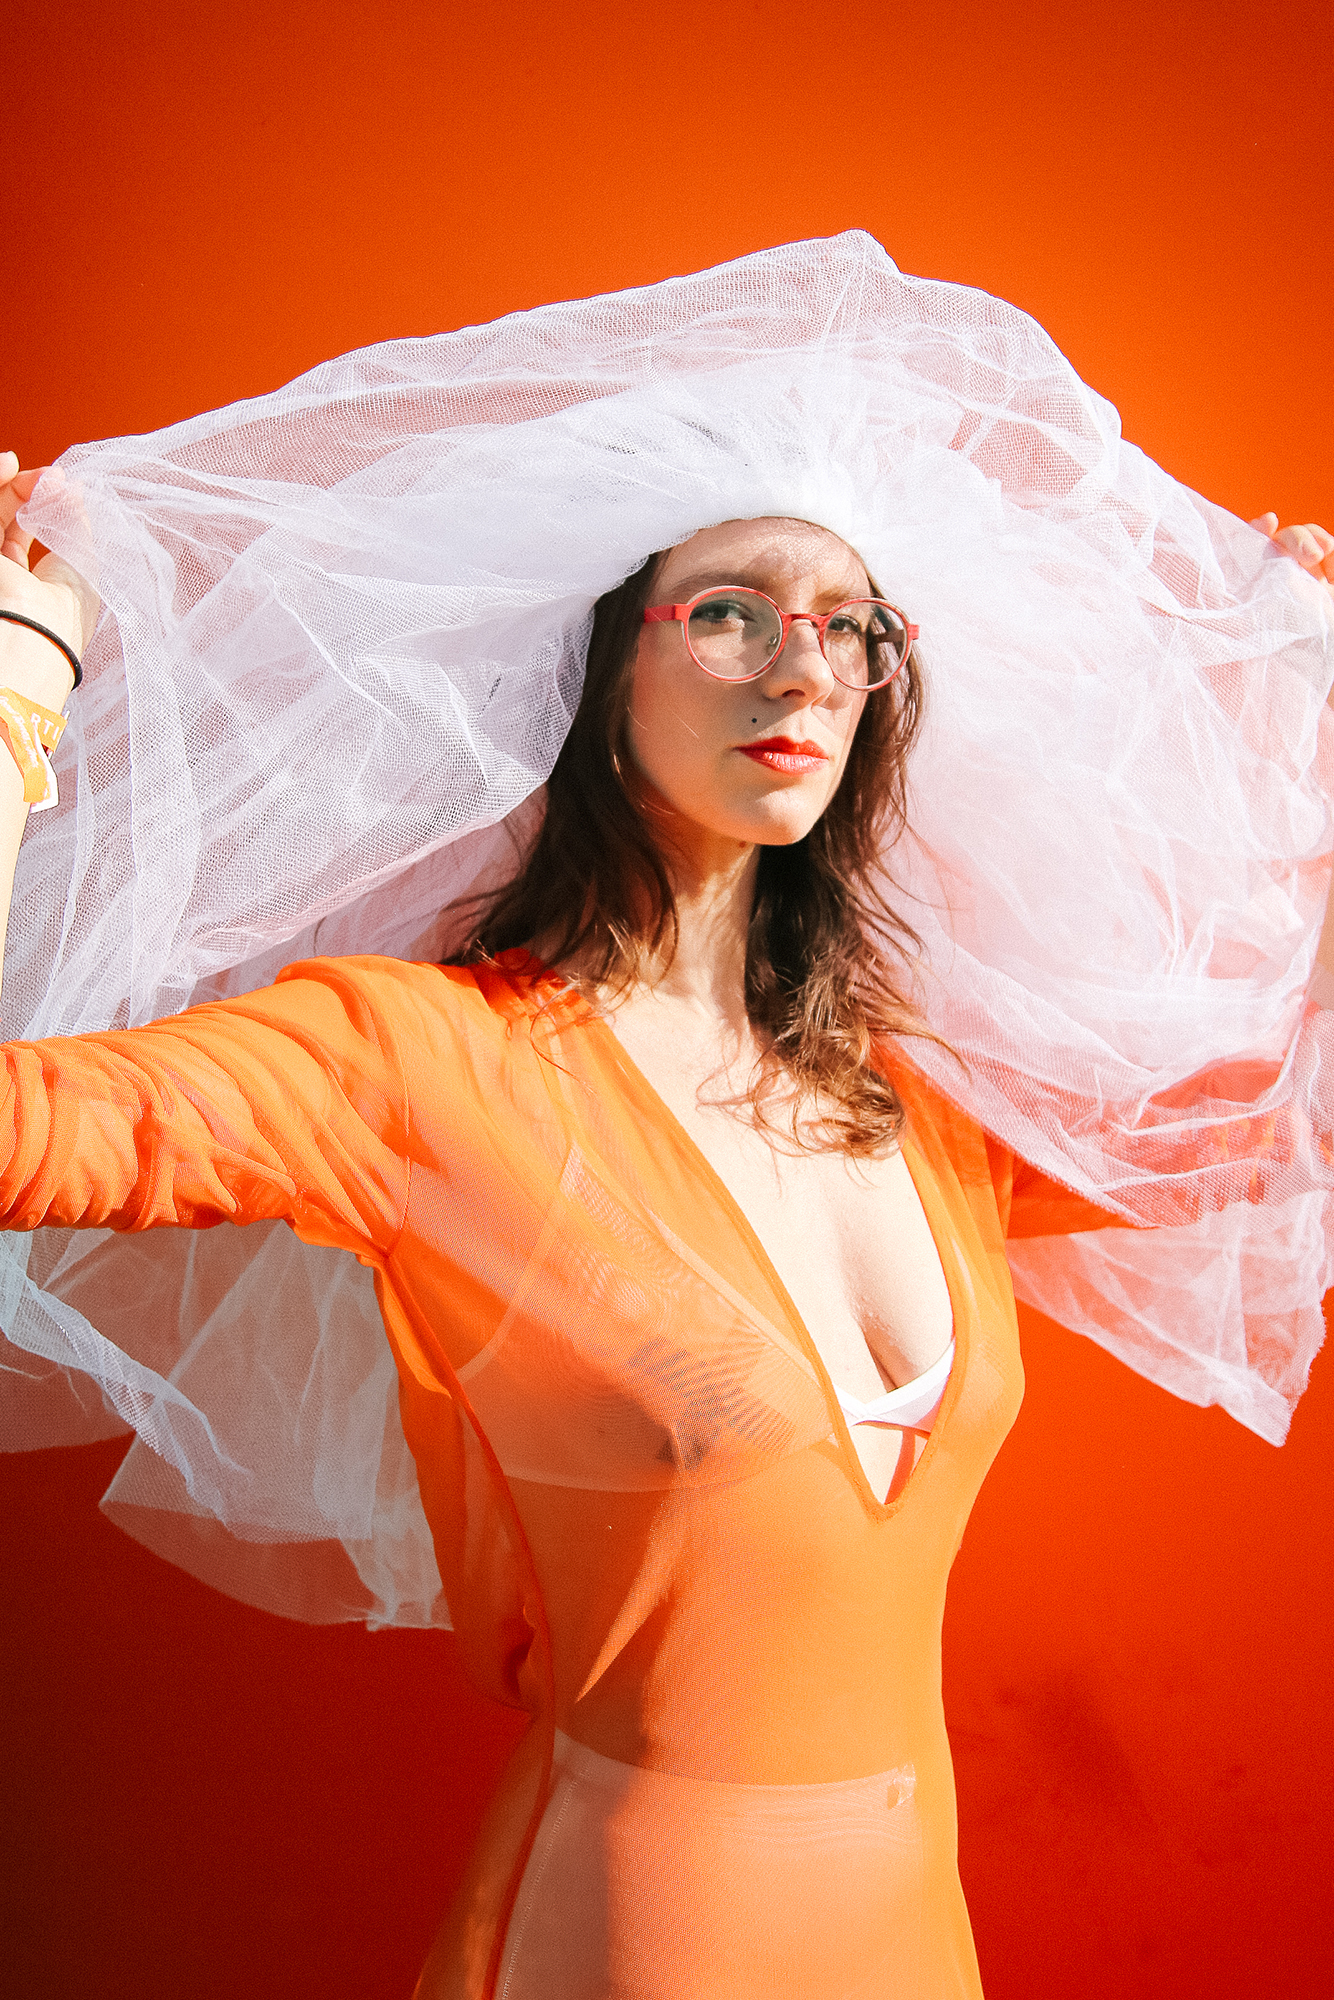 Bright Orange Dress on brunette woman with a white veil